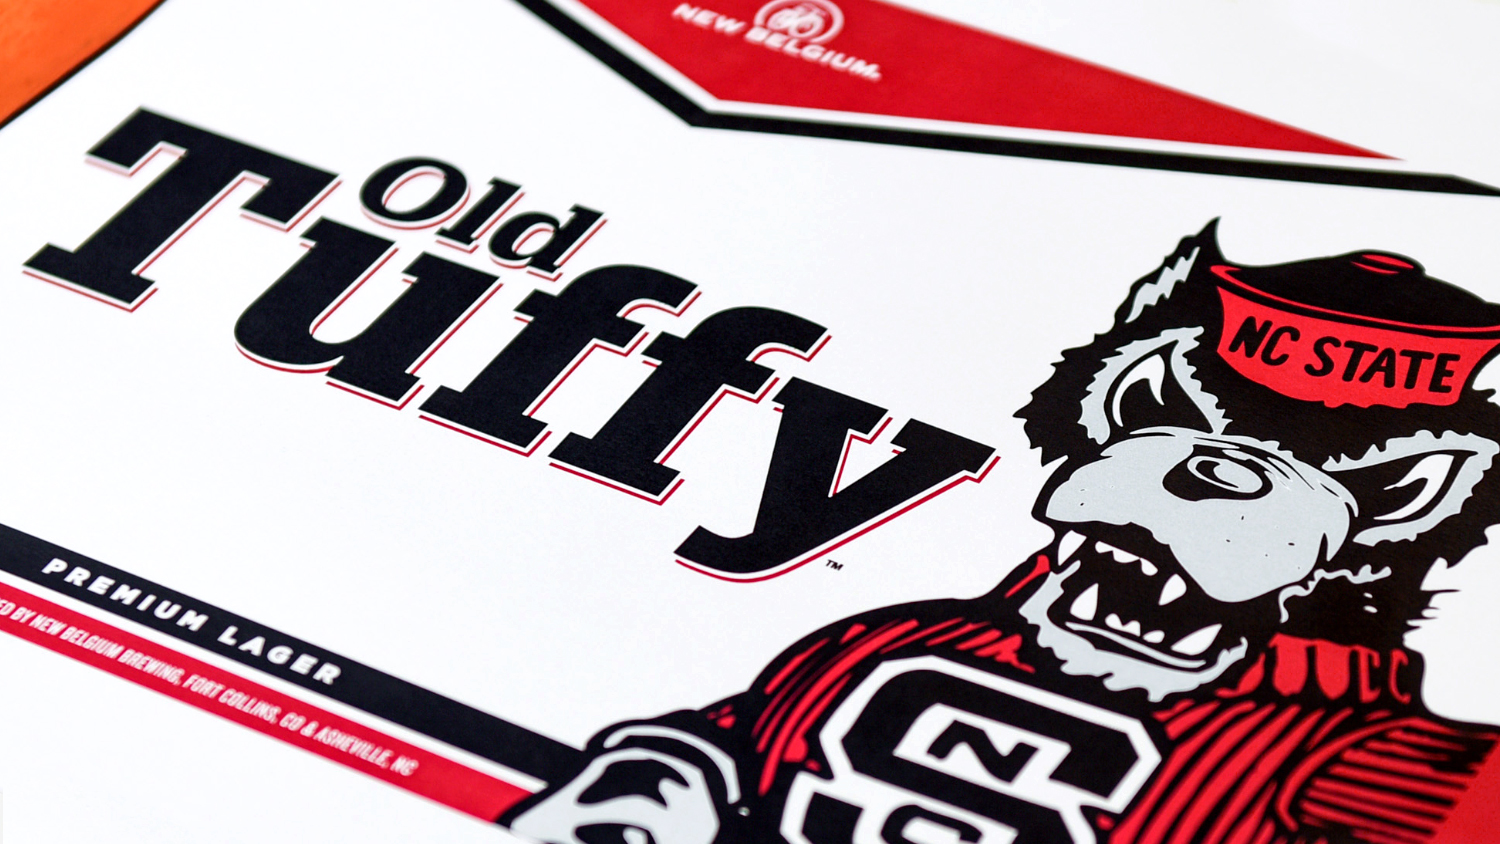 Old Tuffy logo